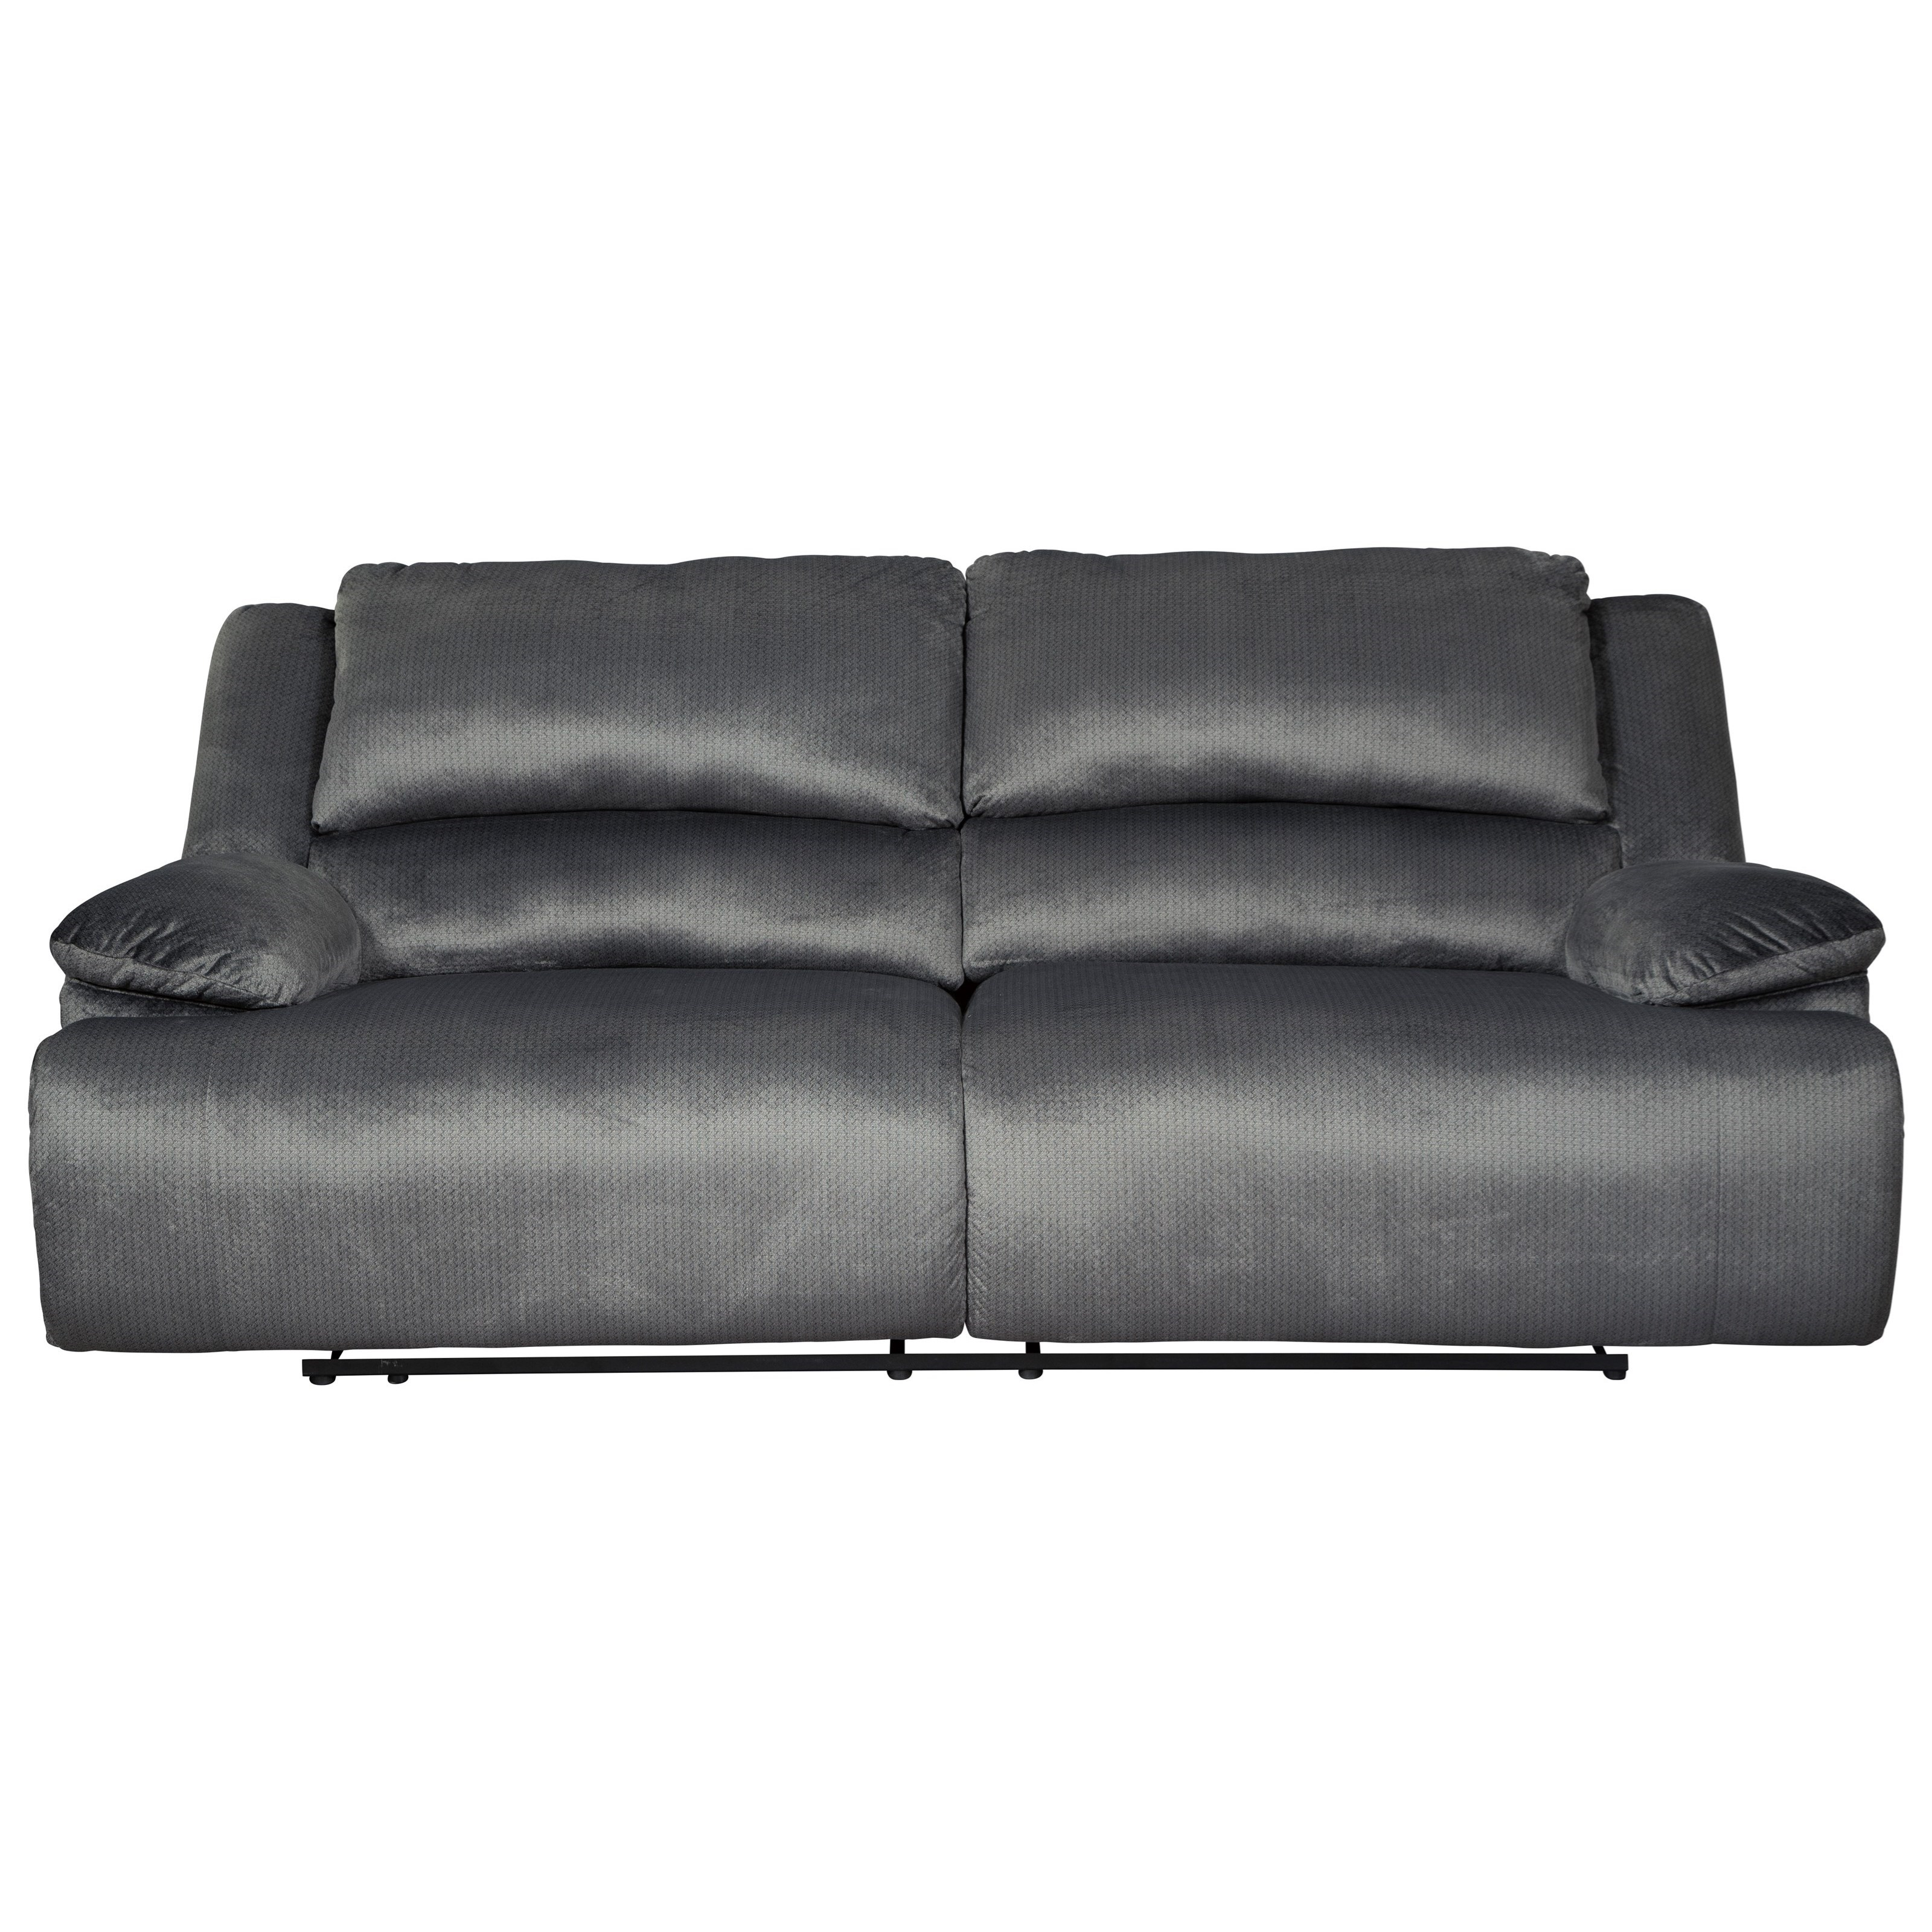 Clonmel 2 Seat Reclining Power Sofa by Signature Design by Ashley at Value City Furniture